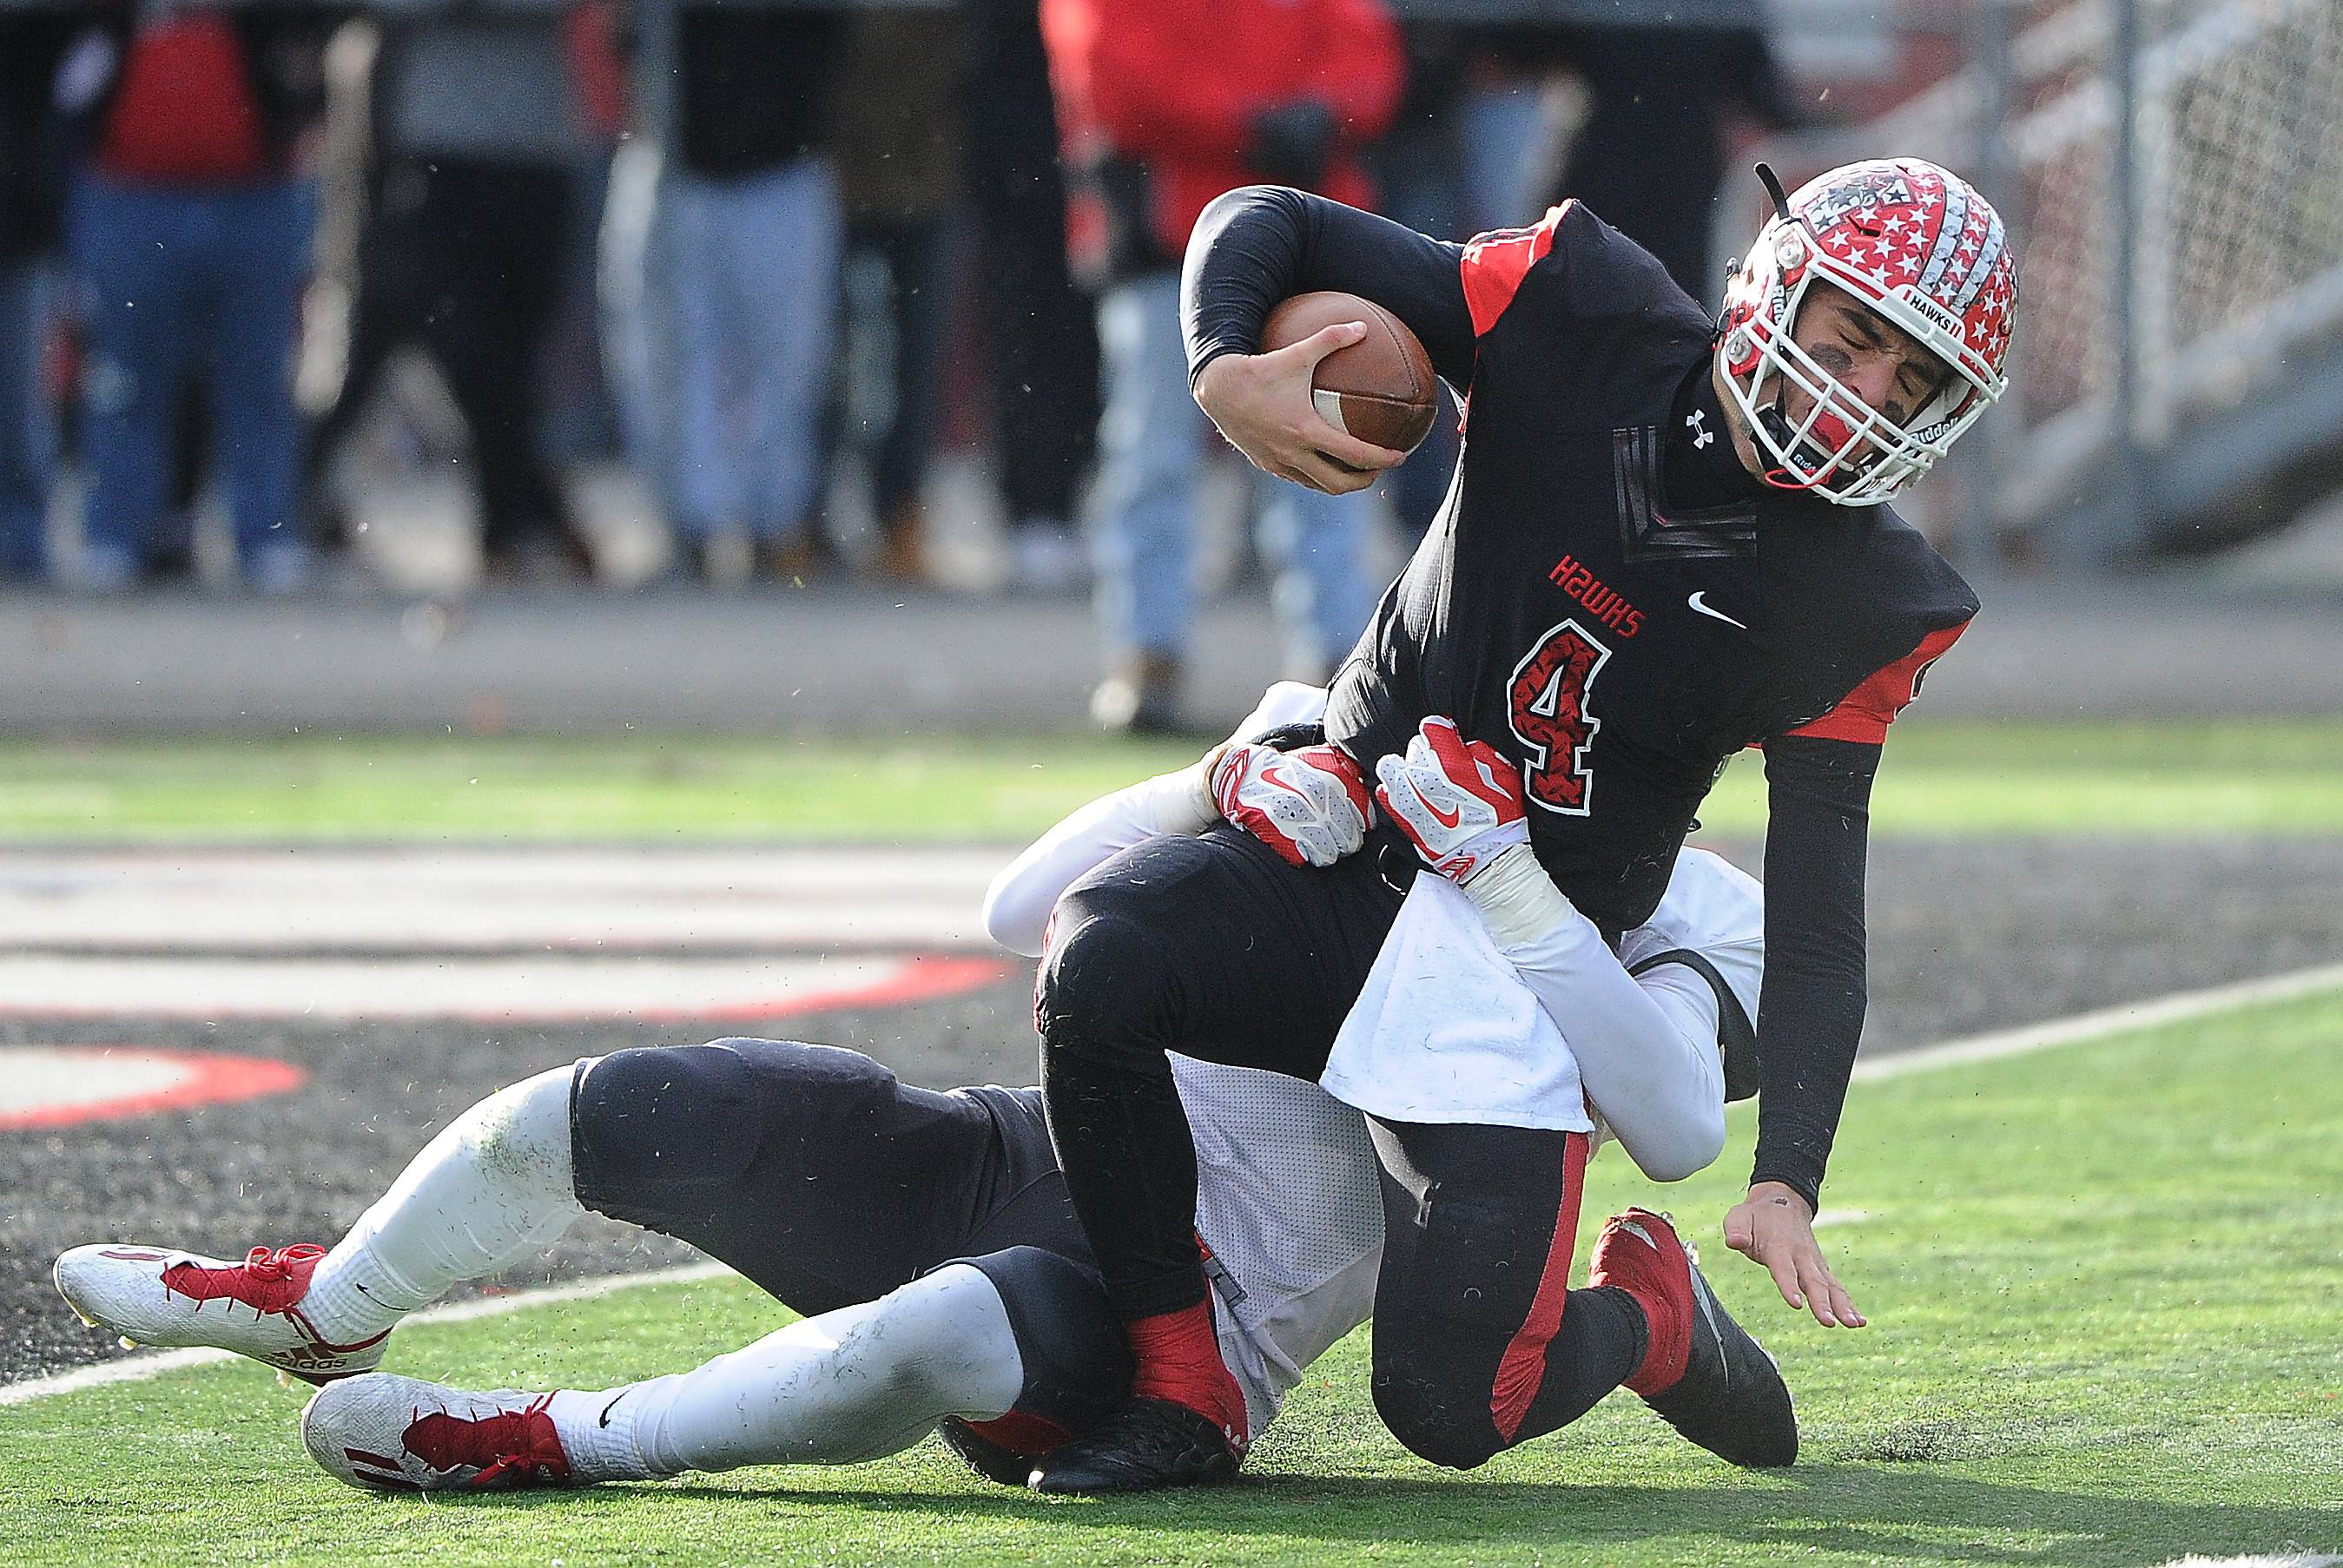 Winds of football fate favor Maine South against Palatine